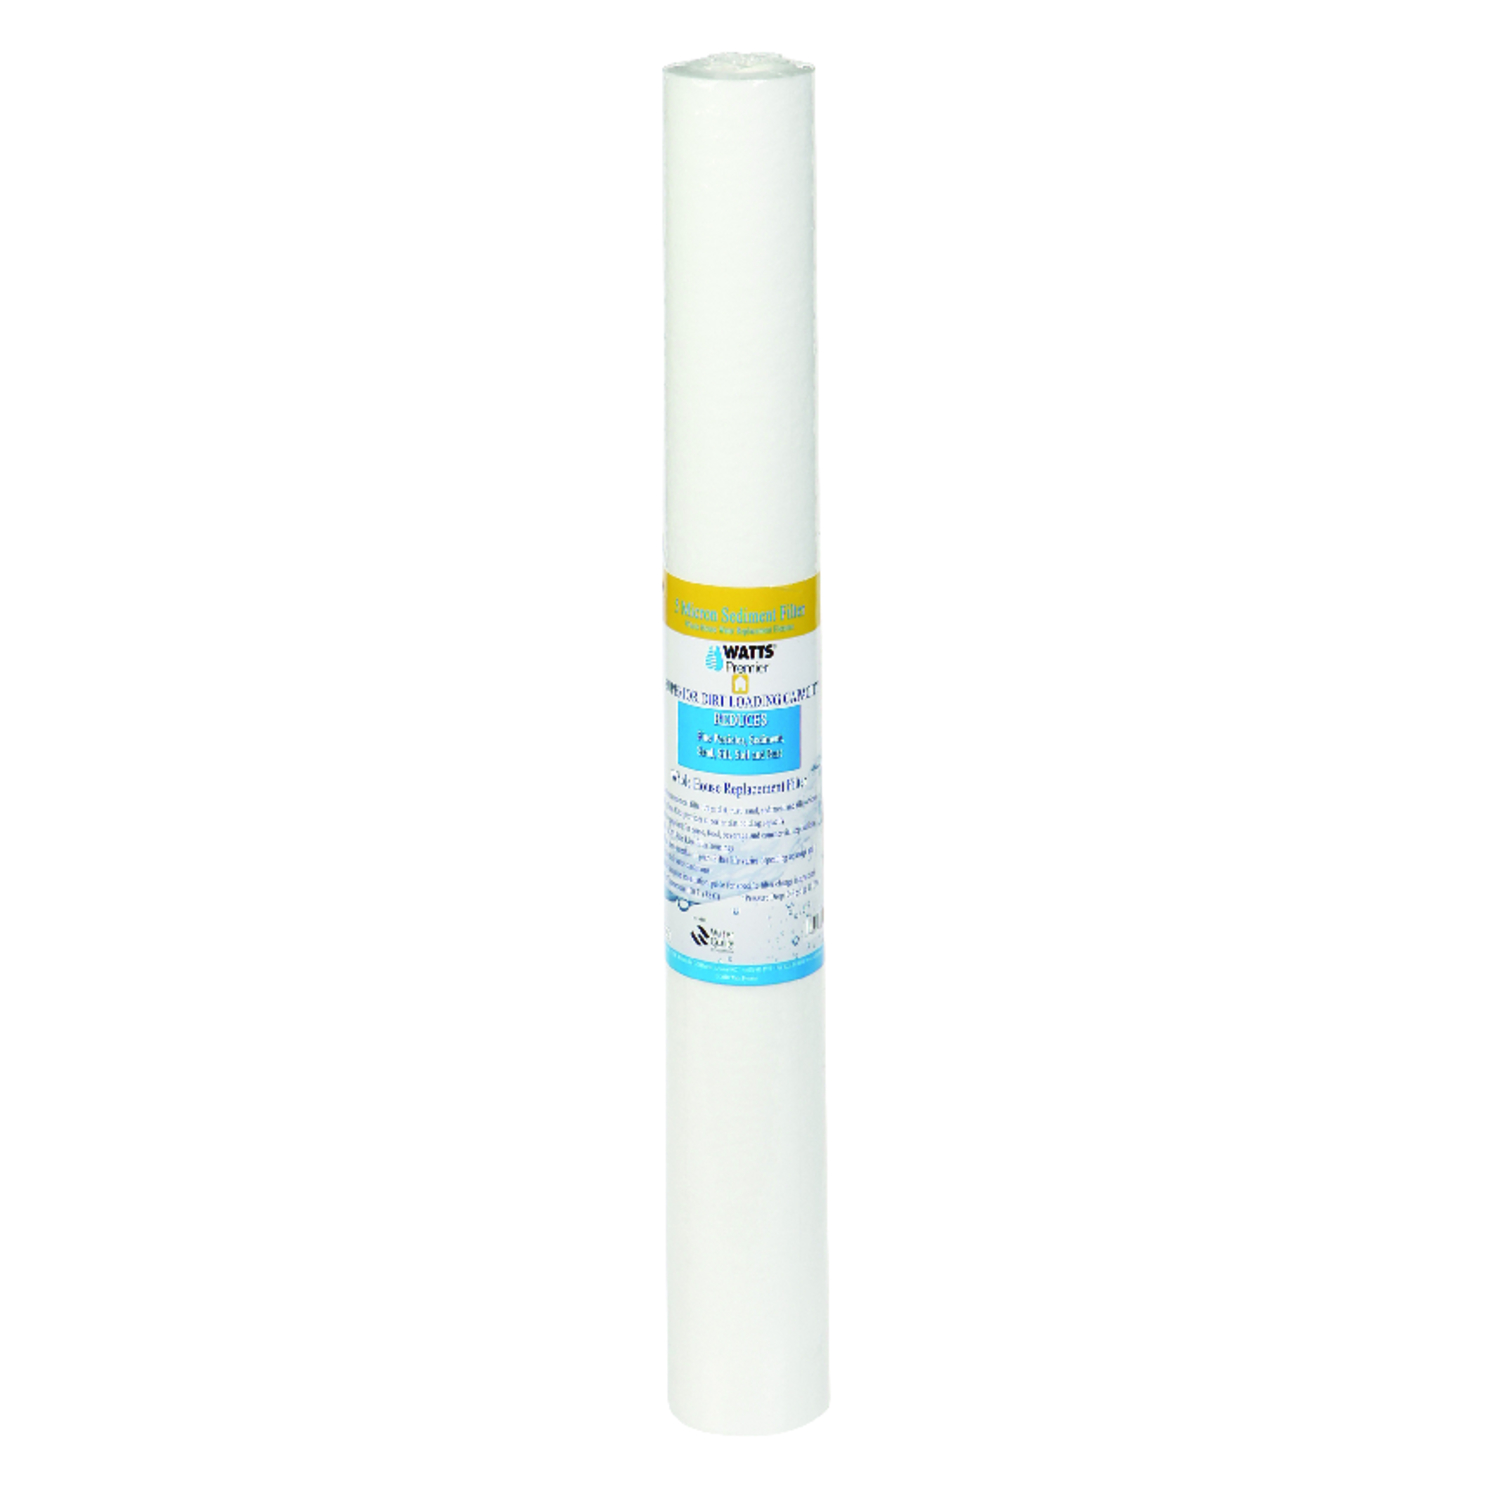 Watts  Premier  Replacement Water Filter  For Whole House 1 year